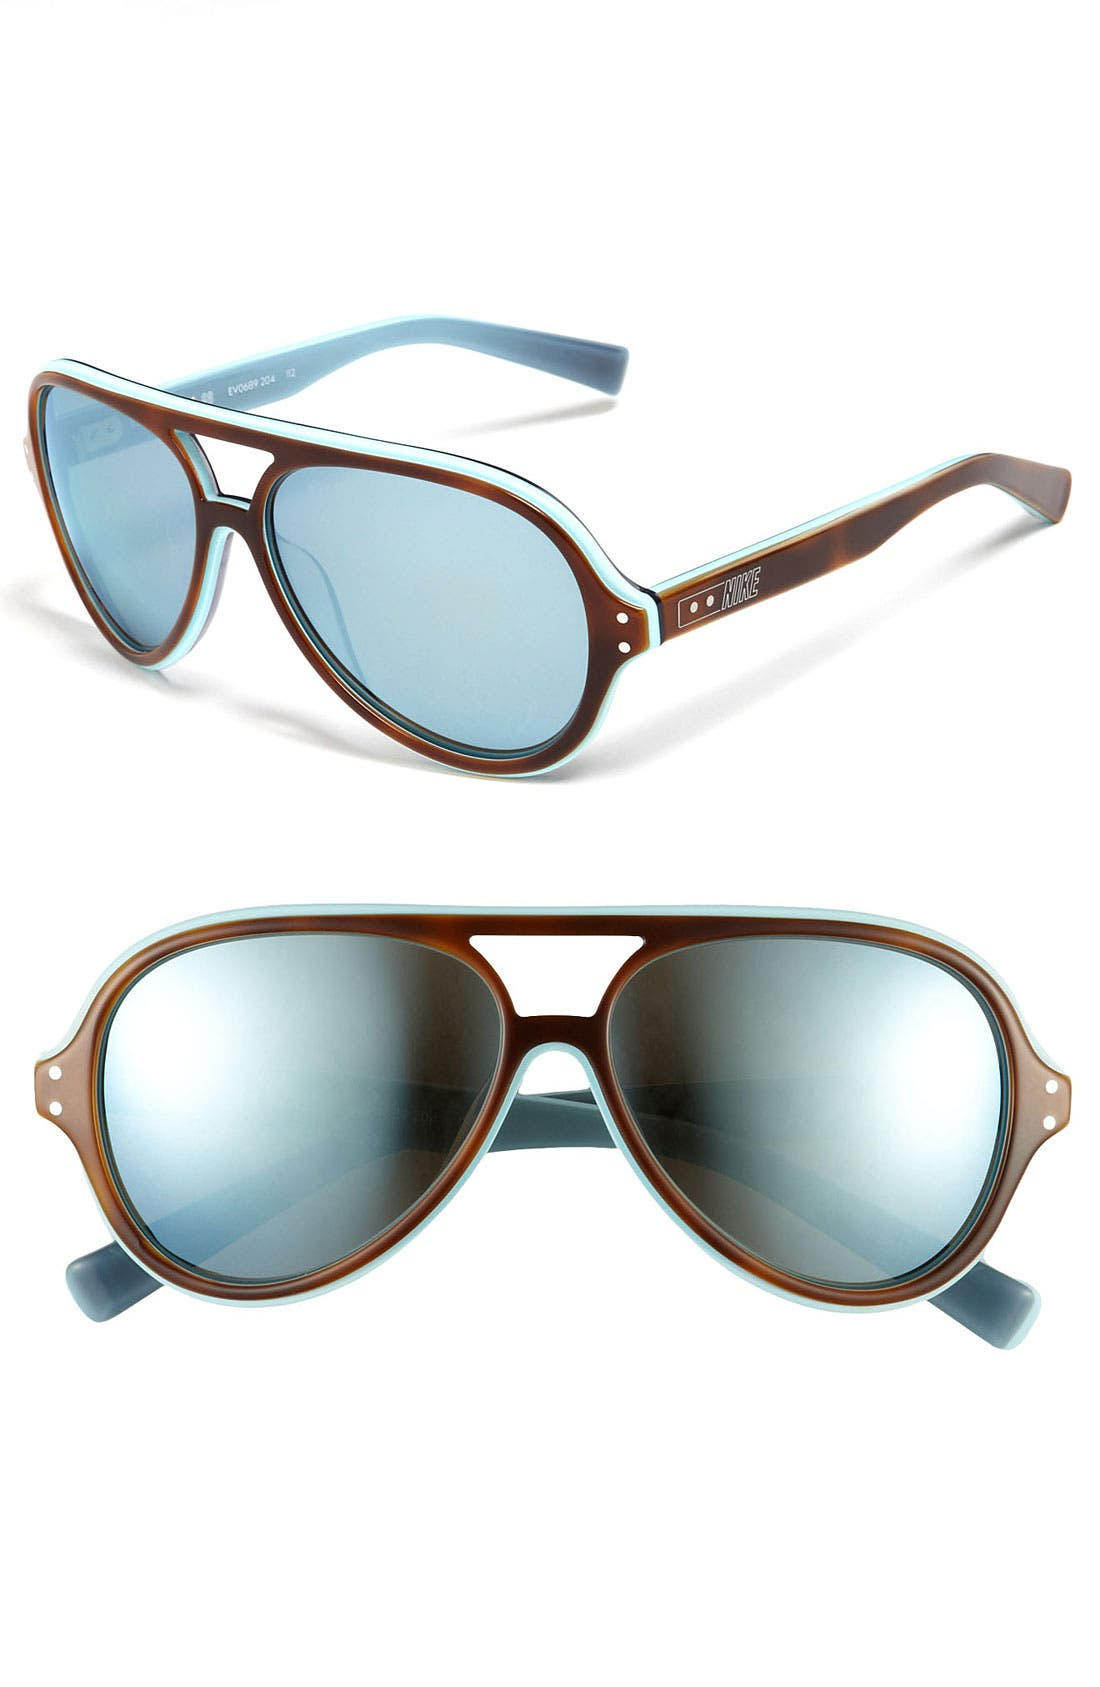 Main Image - Nike 59mm Aviator Sunglasses